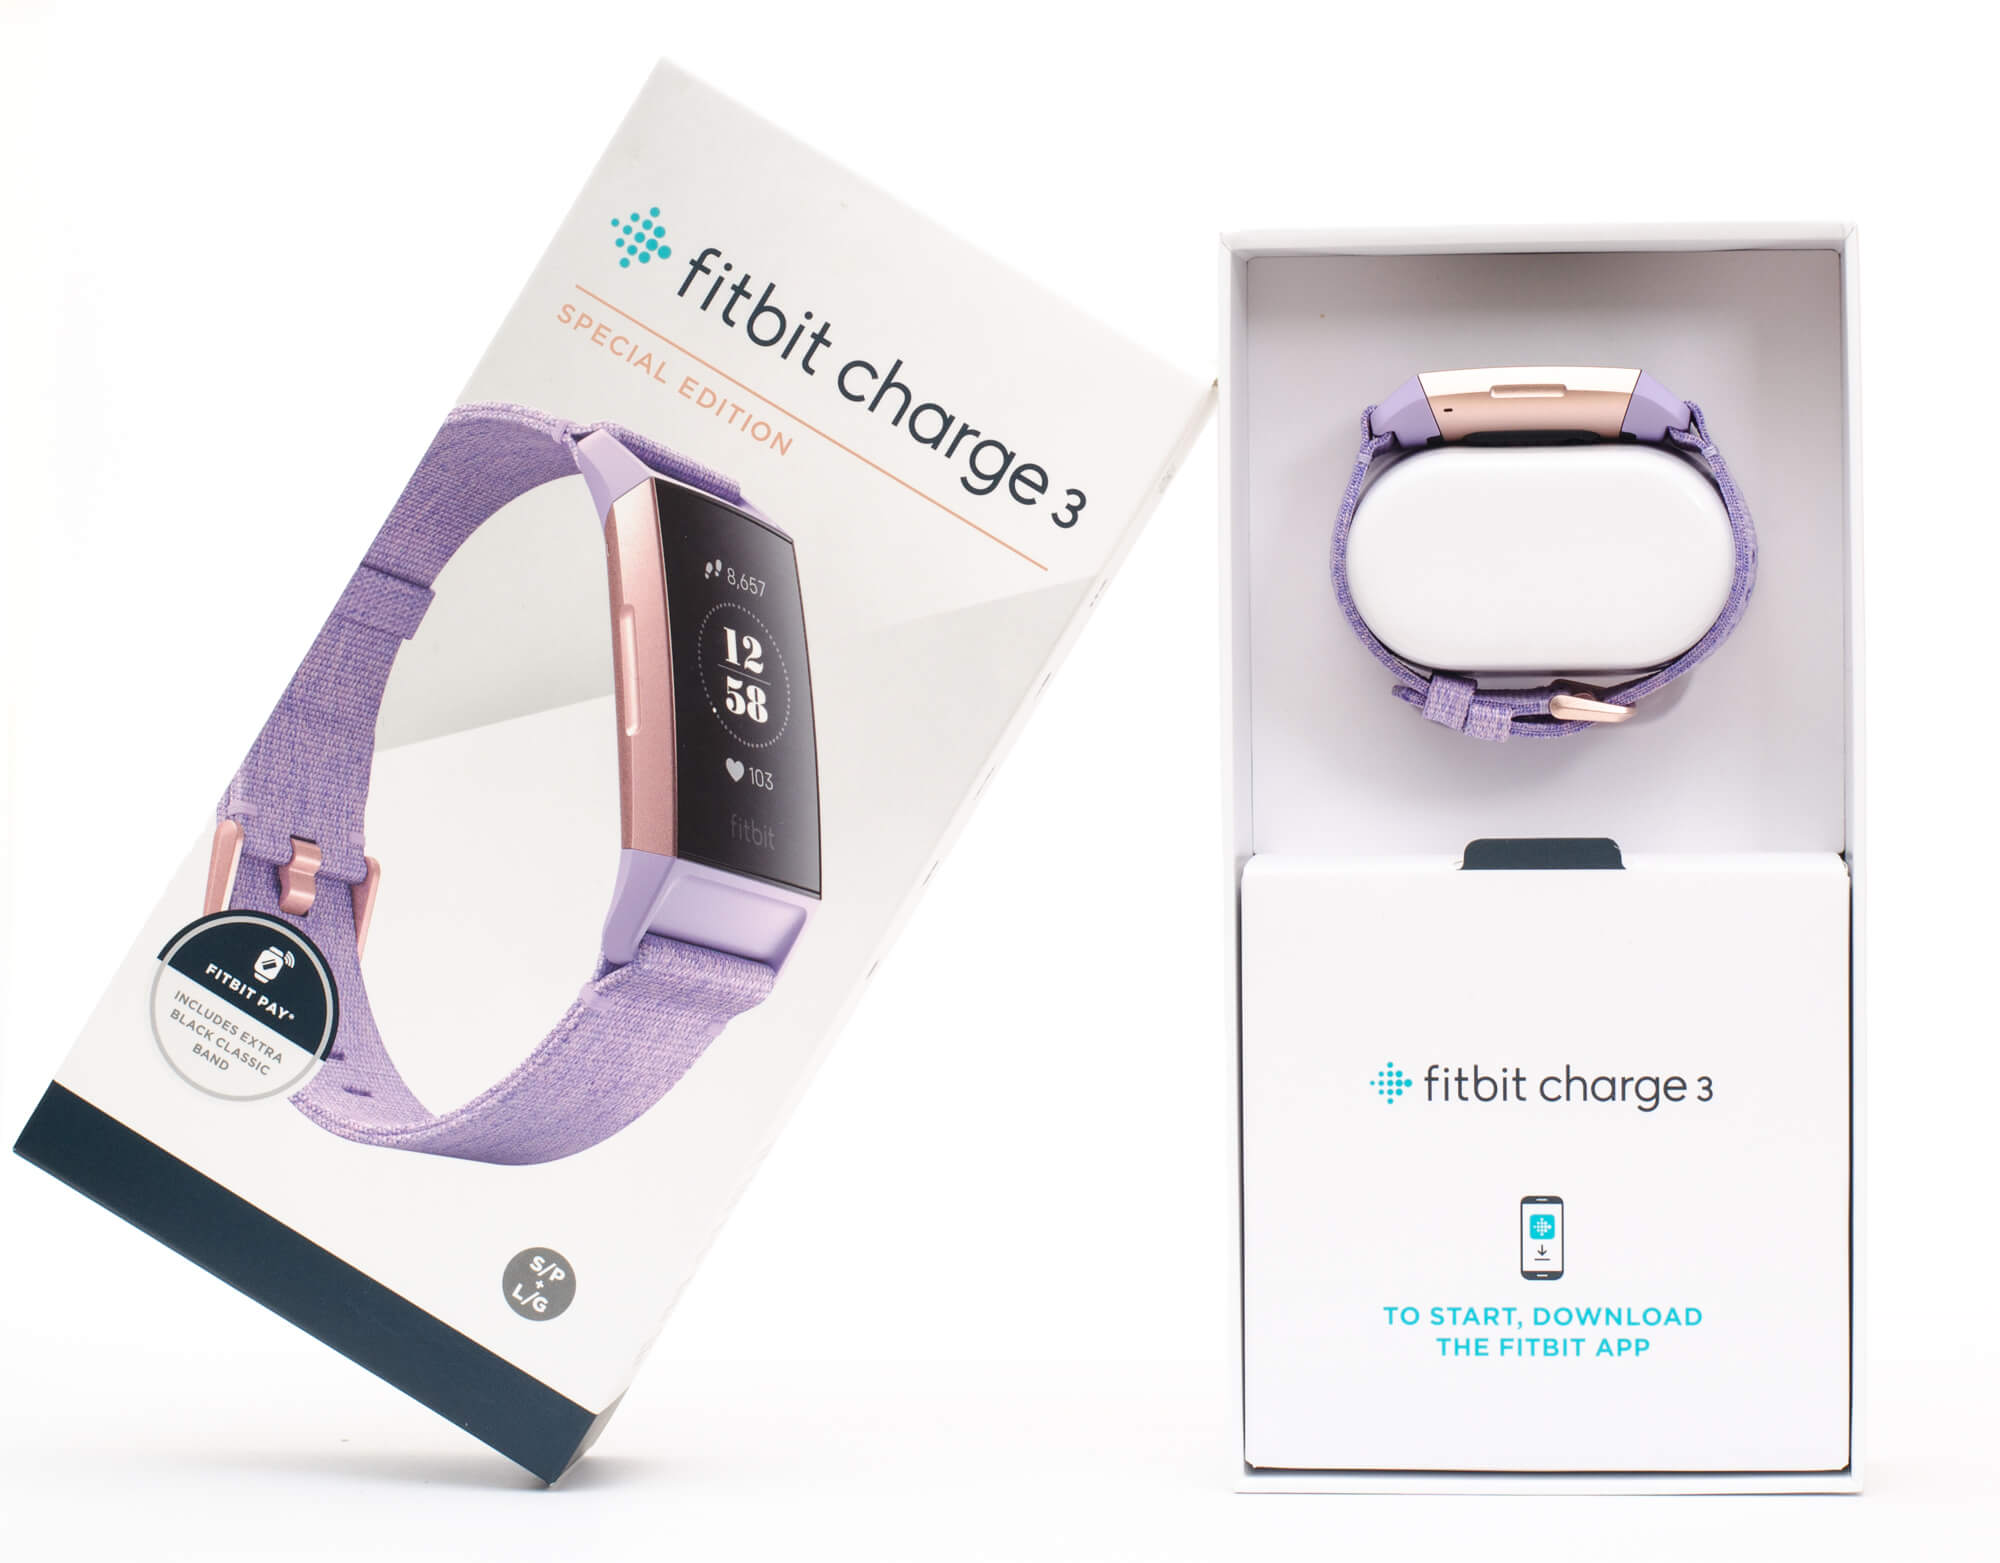 Top 10 Punto Medio Noticias | Fitbit Charge 3 Special Edition Unboxing